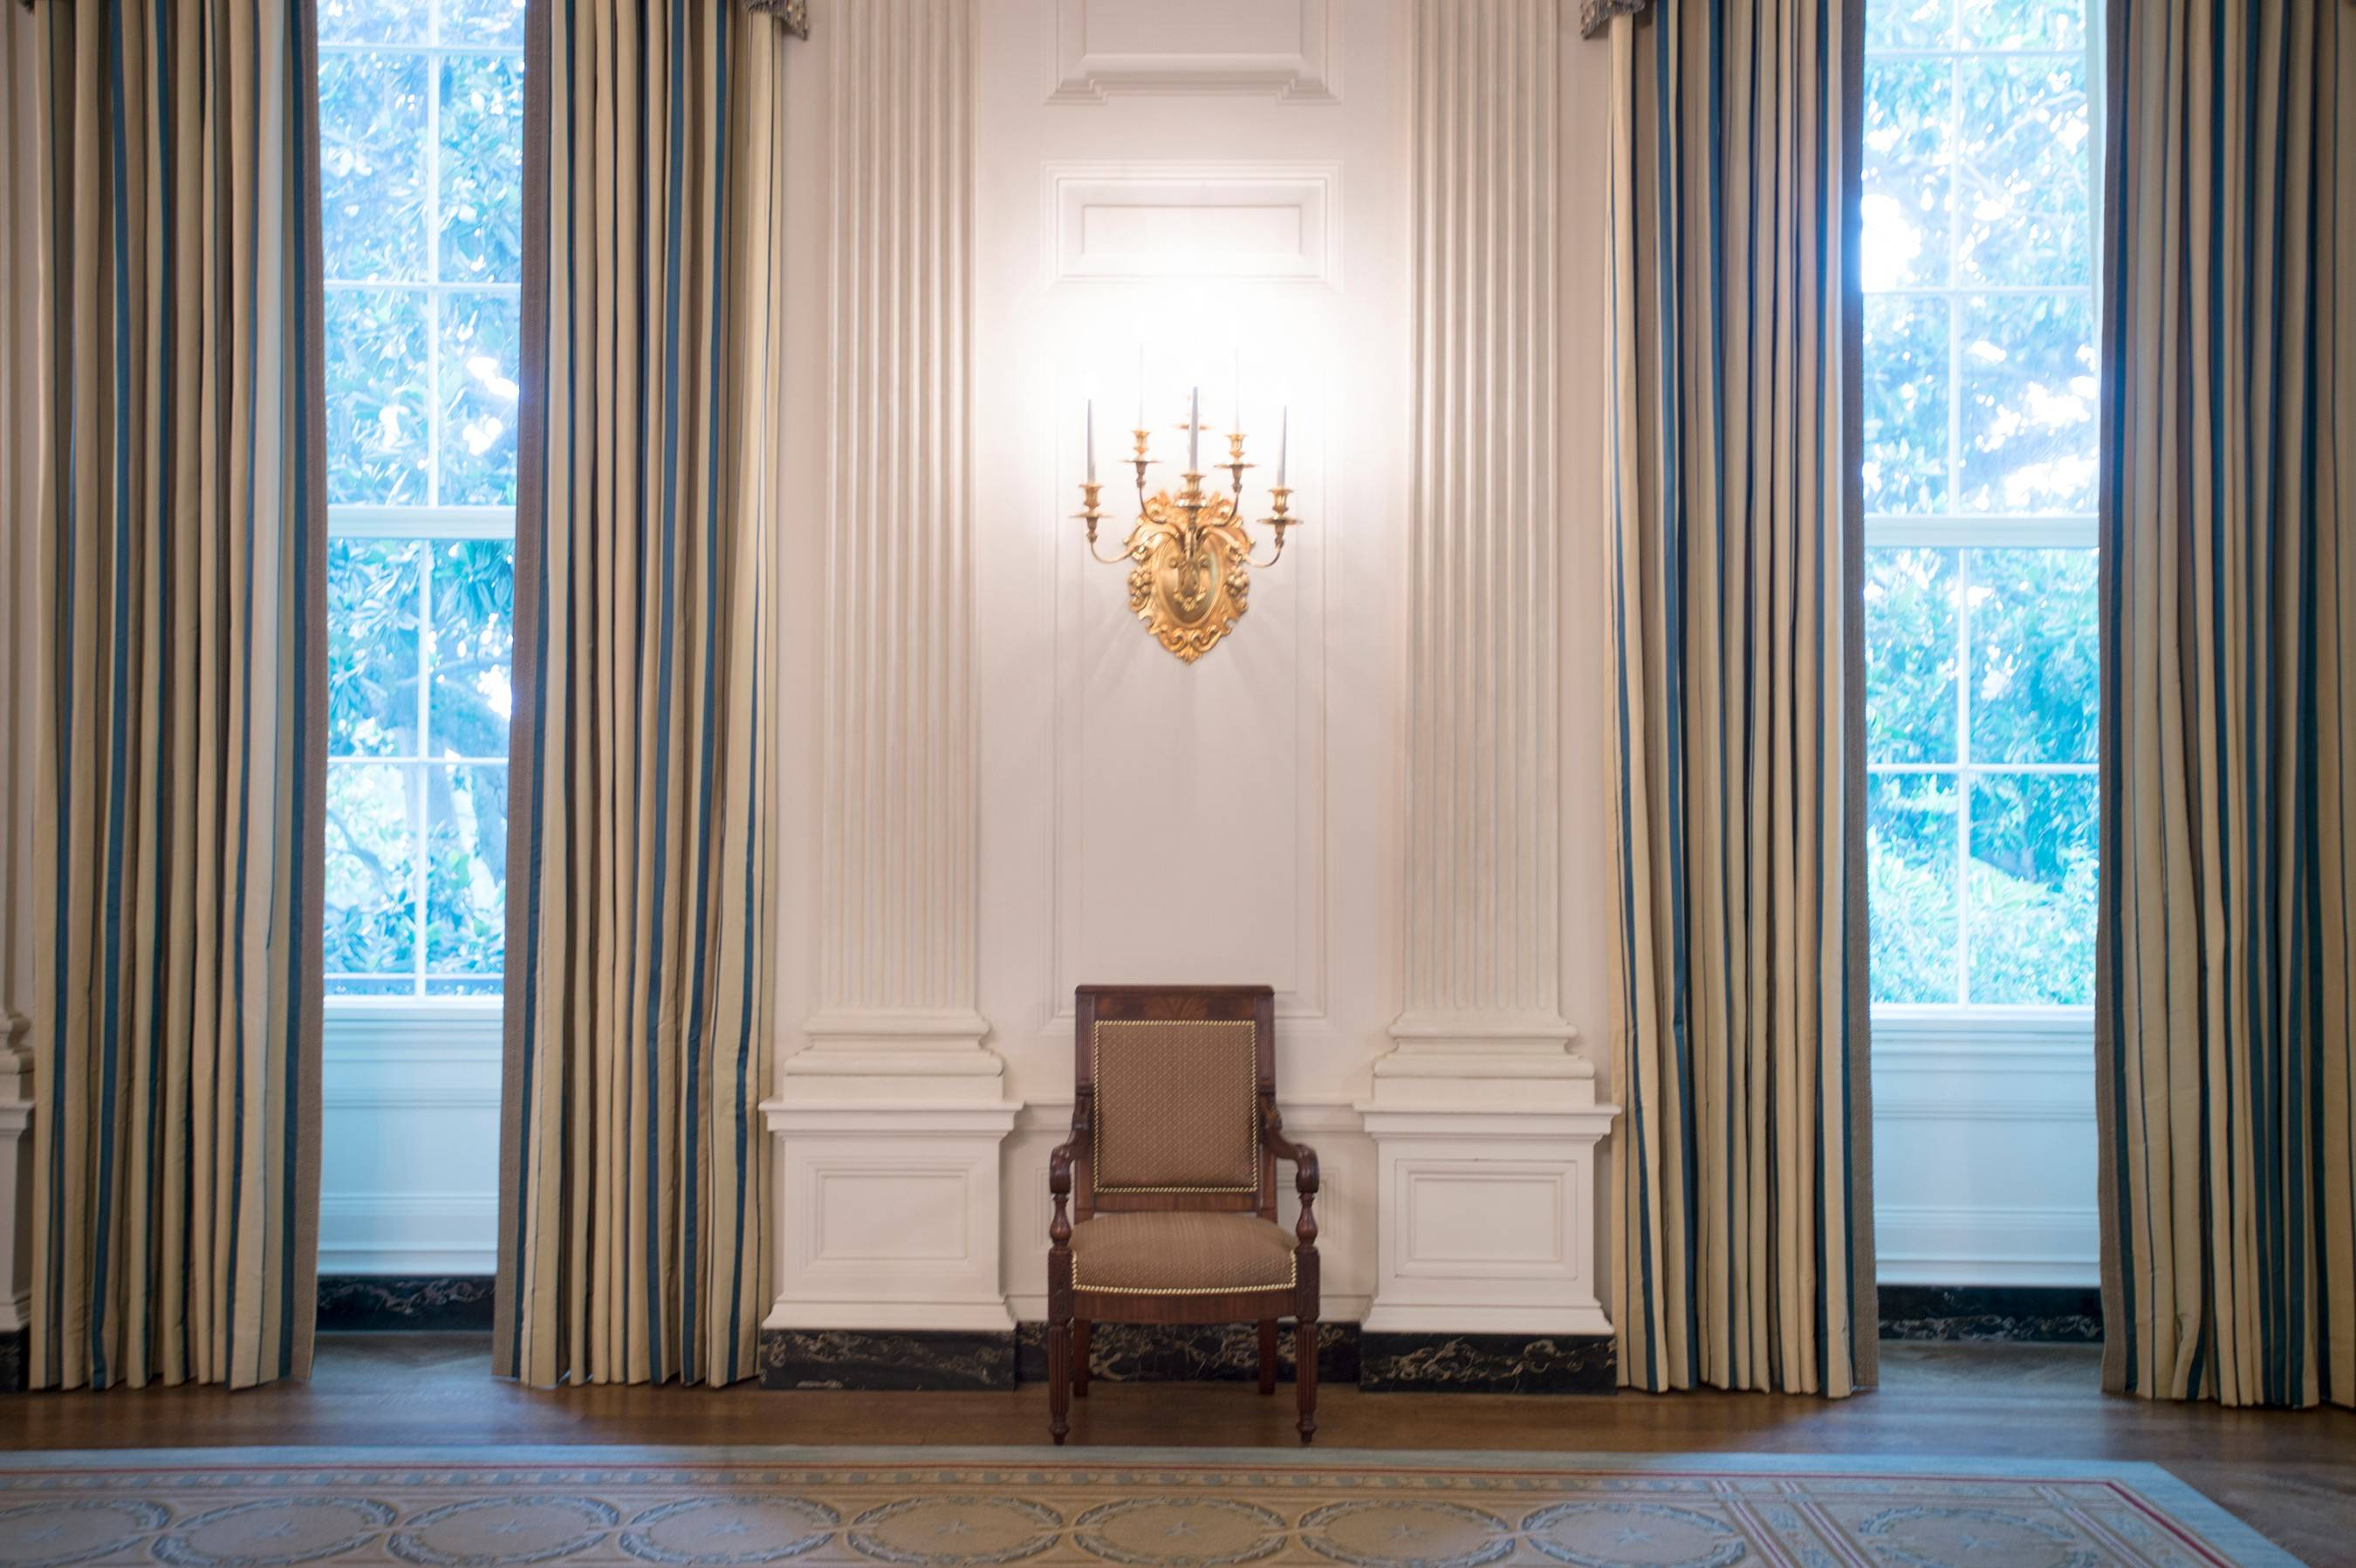 The makeover of the White House State Dining Room dressed up the space with sumptuous new silk curtains, a set of 34 new mahogany chairs inspired by ones from the Monroe era and a new paint job that highlights the architecture in the room.